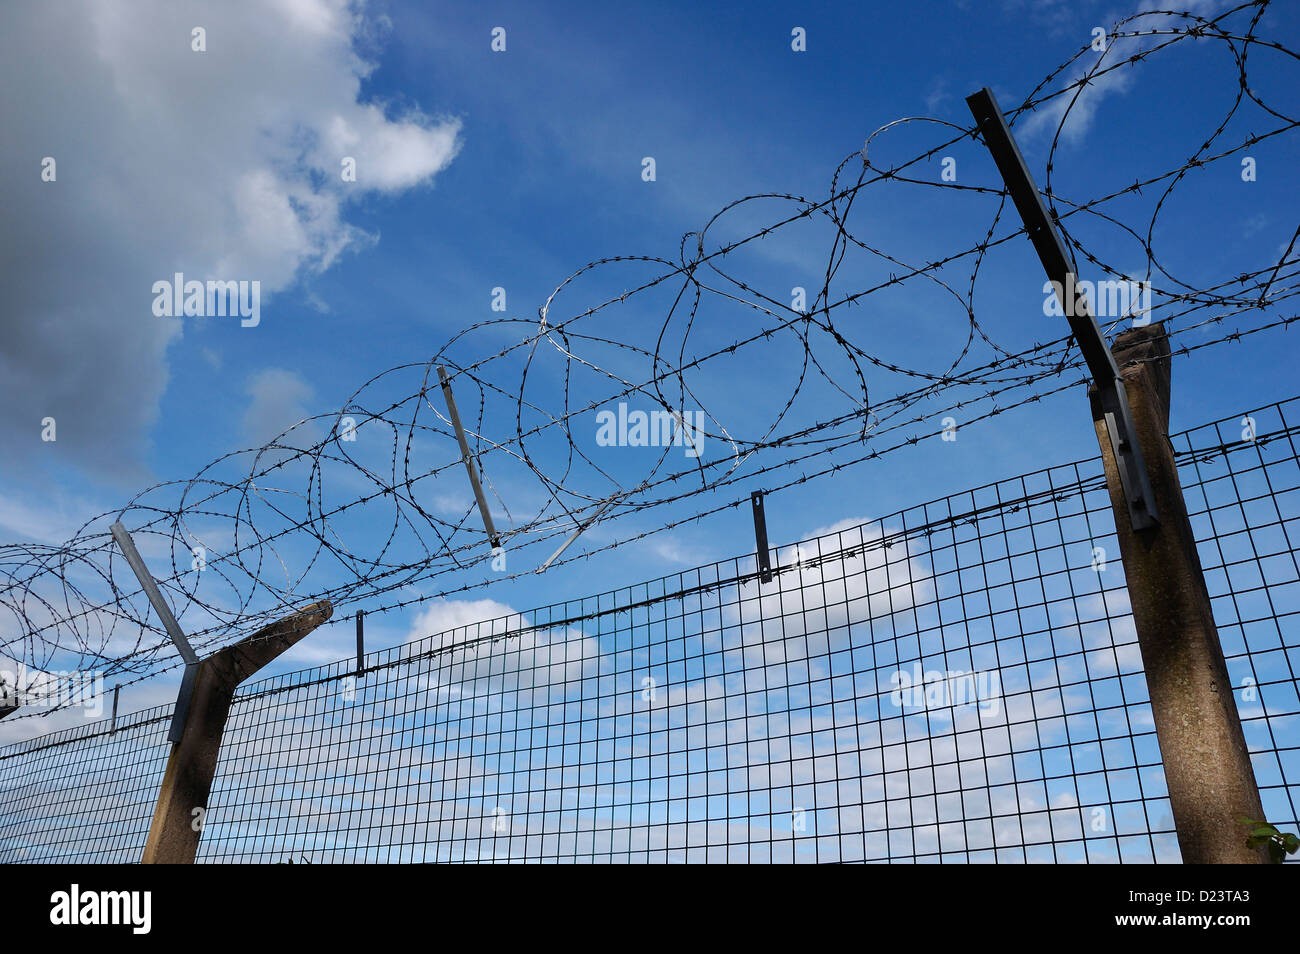 Security fencing with razor-wire against a blue and cloudy sky - Stock Image